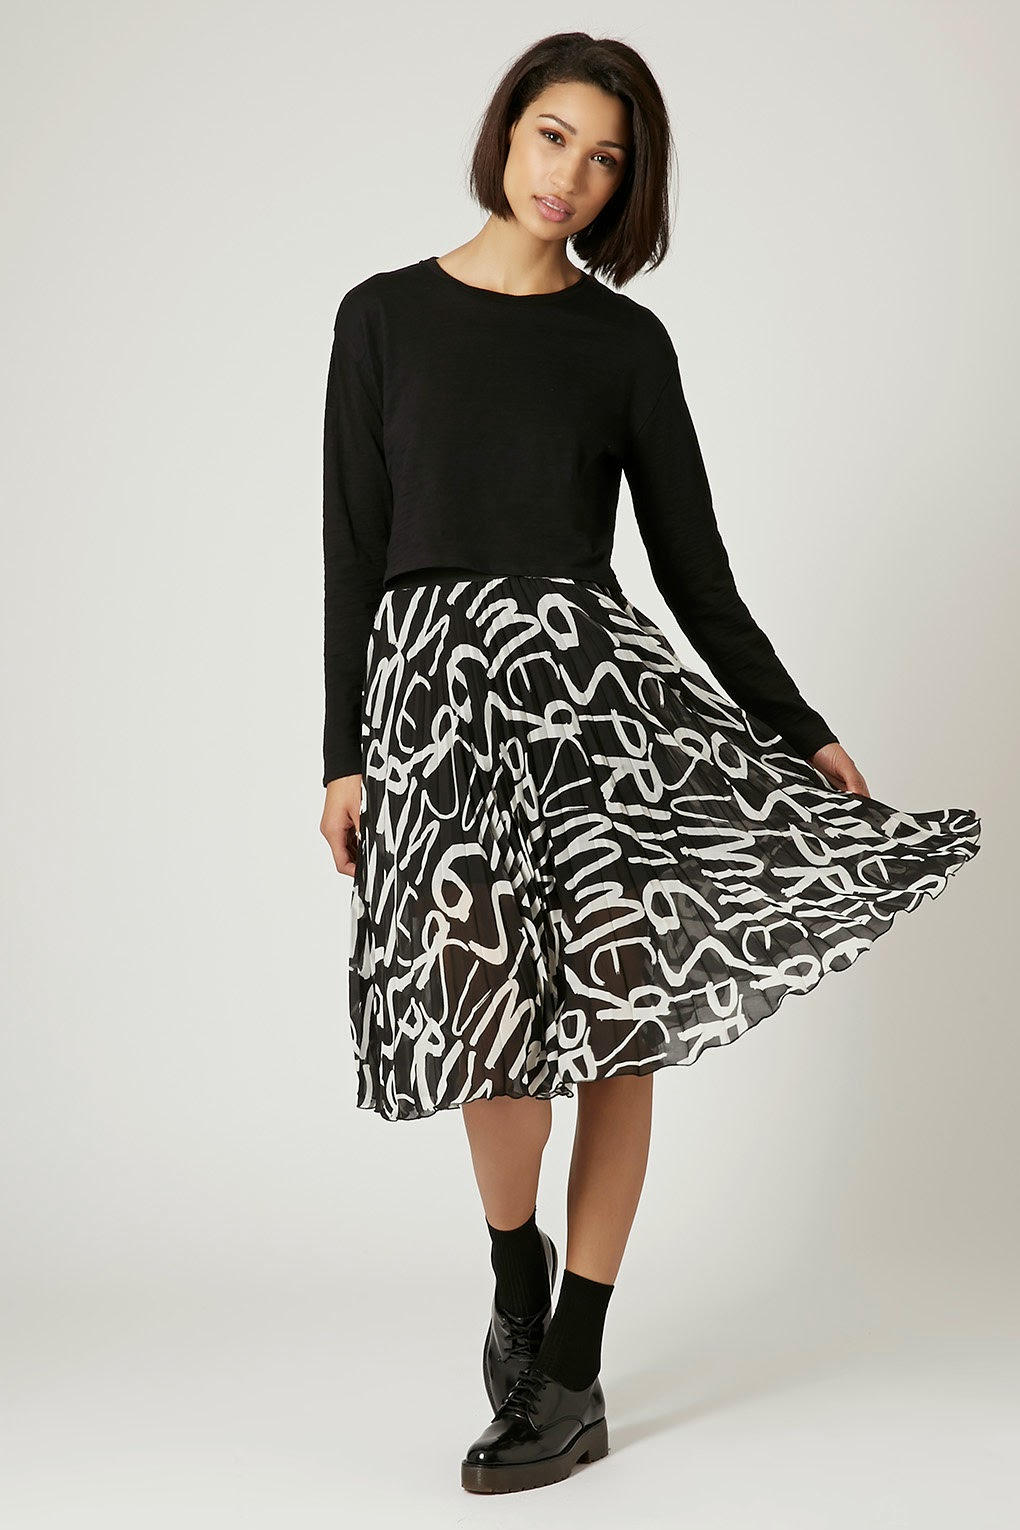 black white flare skirt